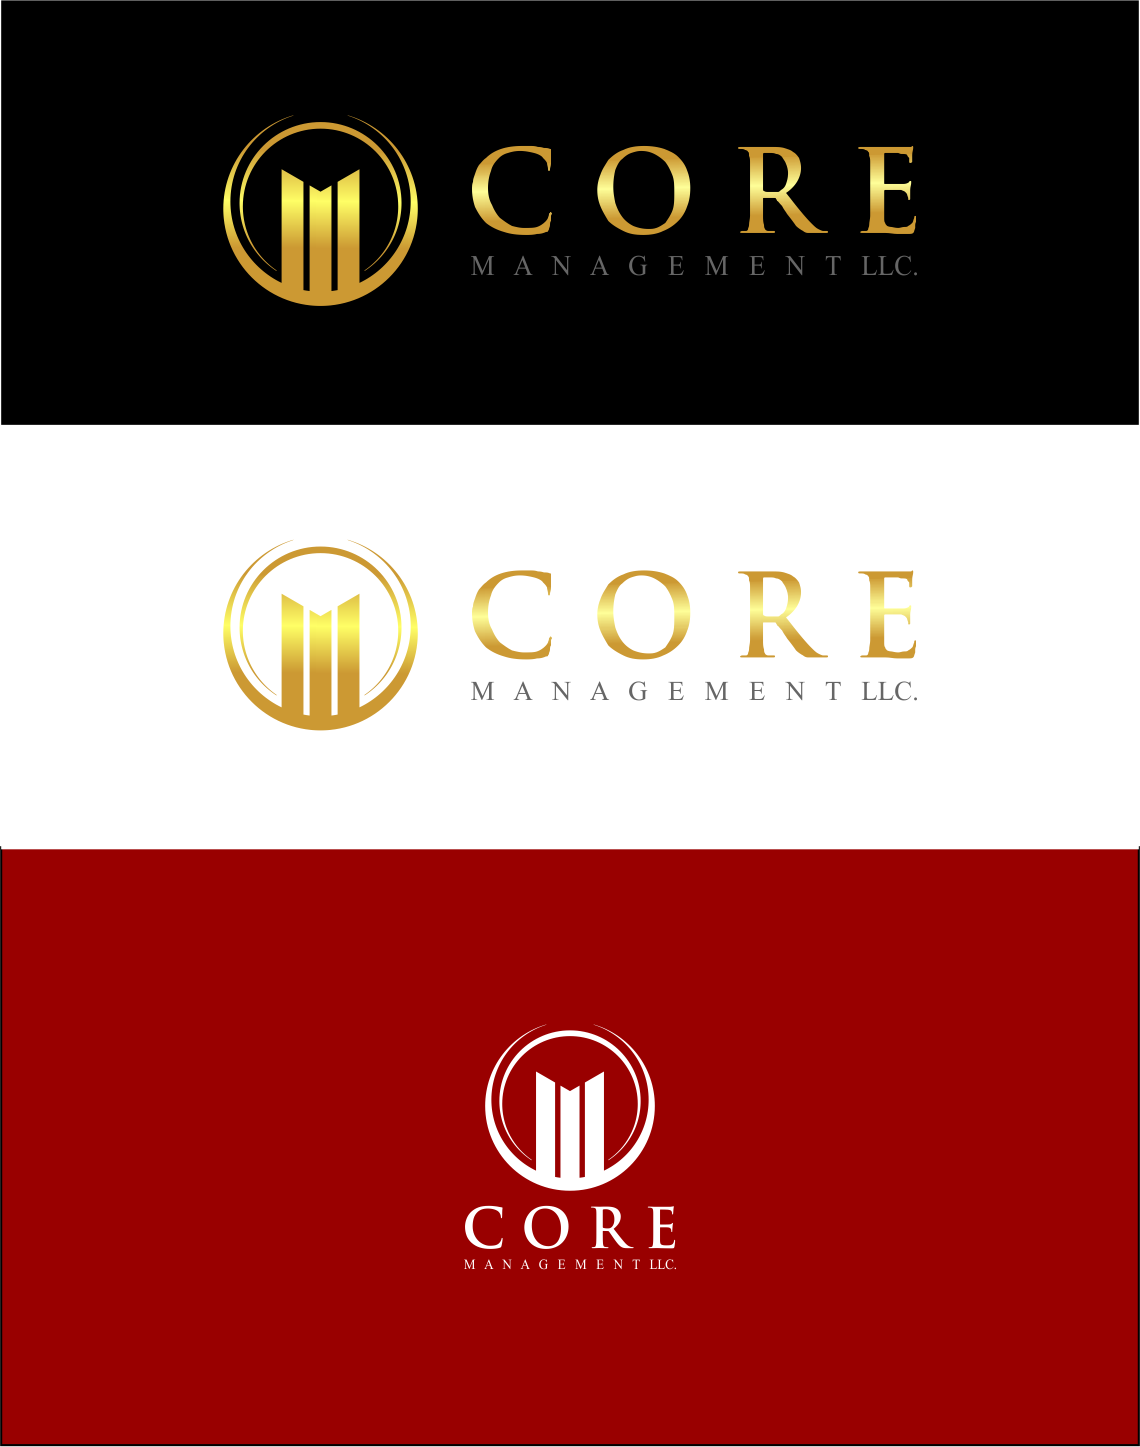 Logo Design by Agus Martoyo - Entry No. 159 in the Logo Design Contest Creative Logo Design for CORE Management, LLC.